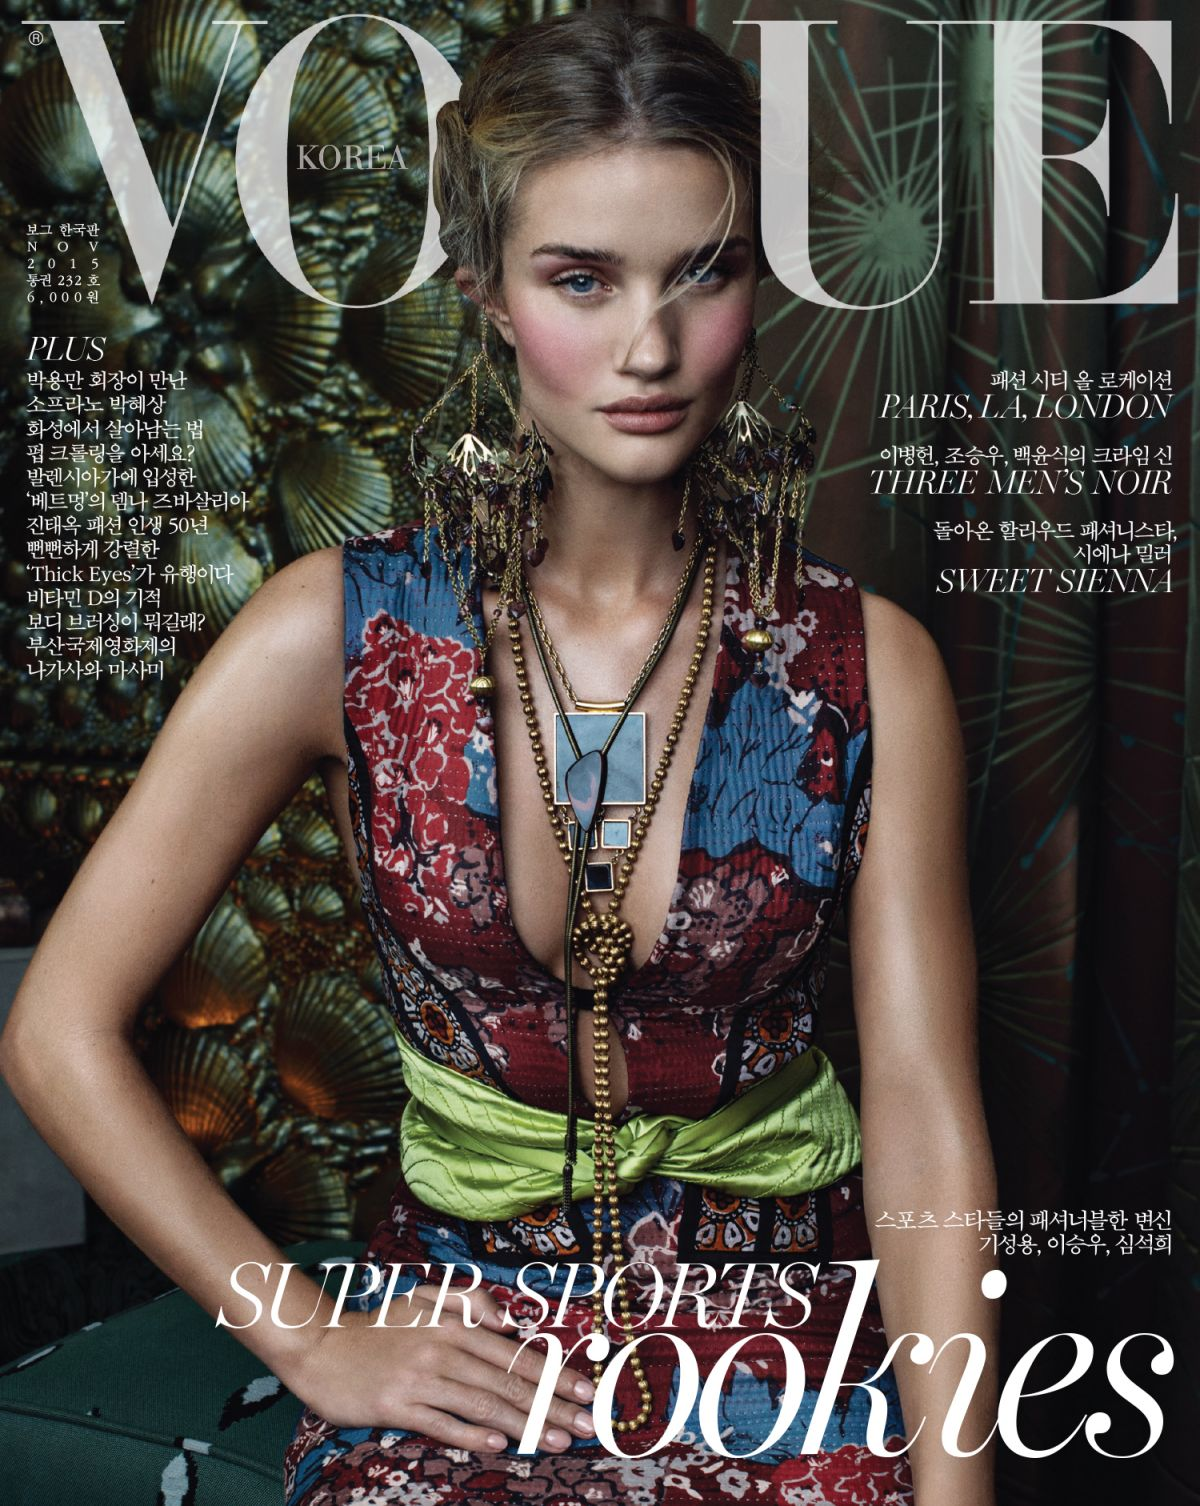 ROSIE HUNTINGTON-WHITELEY in Vogue Magazine, South Korea November 2015 Issue